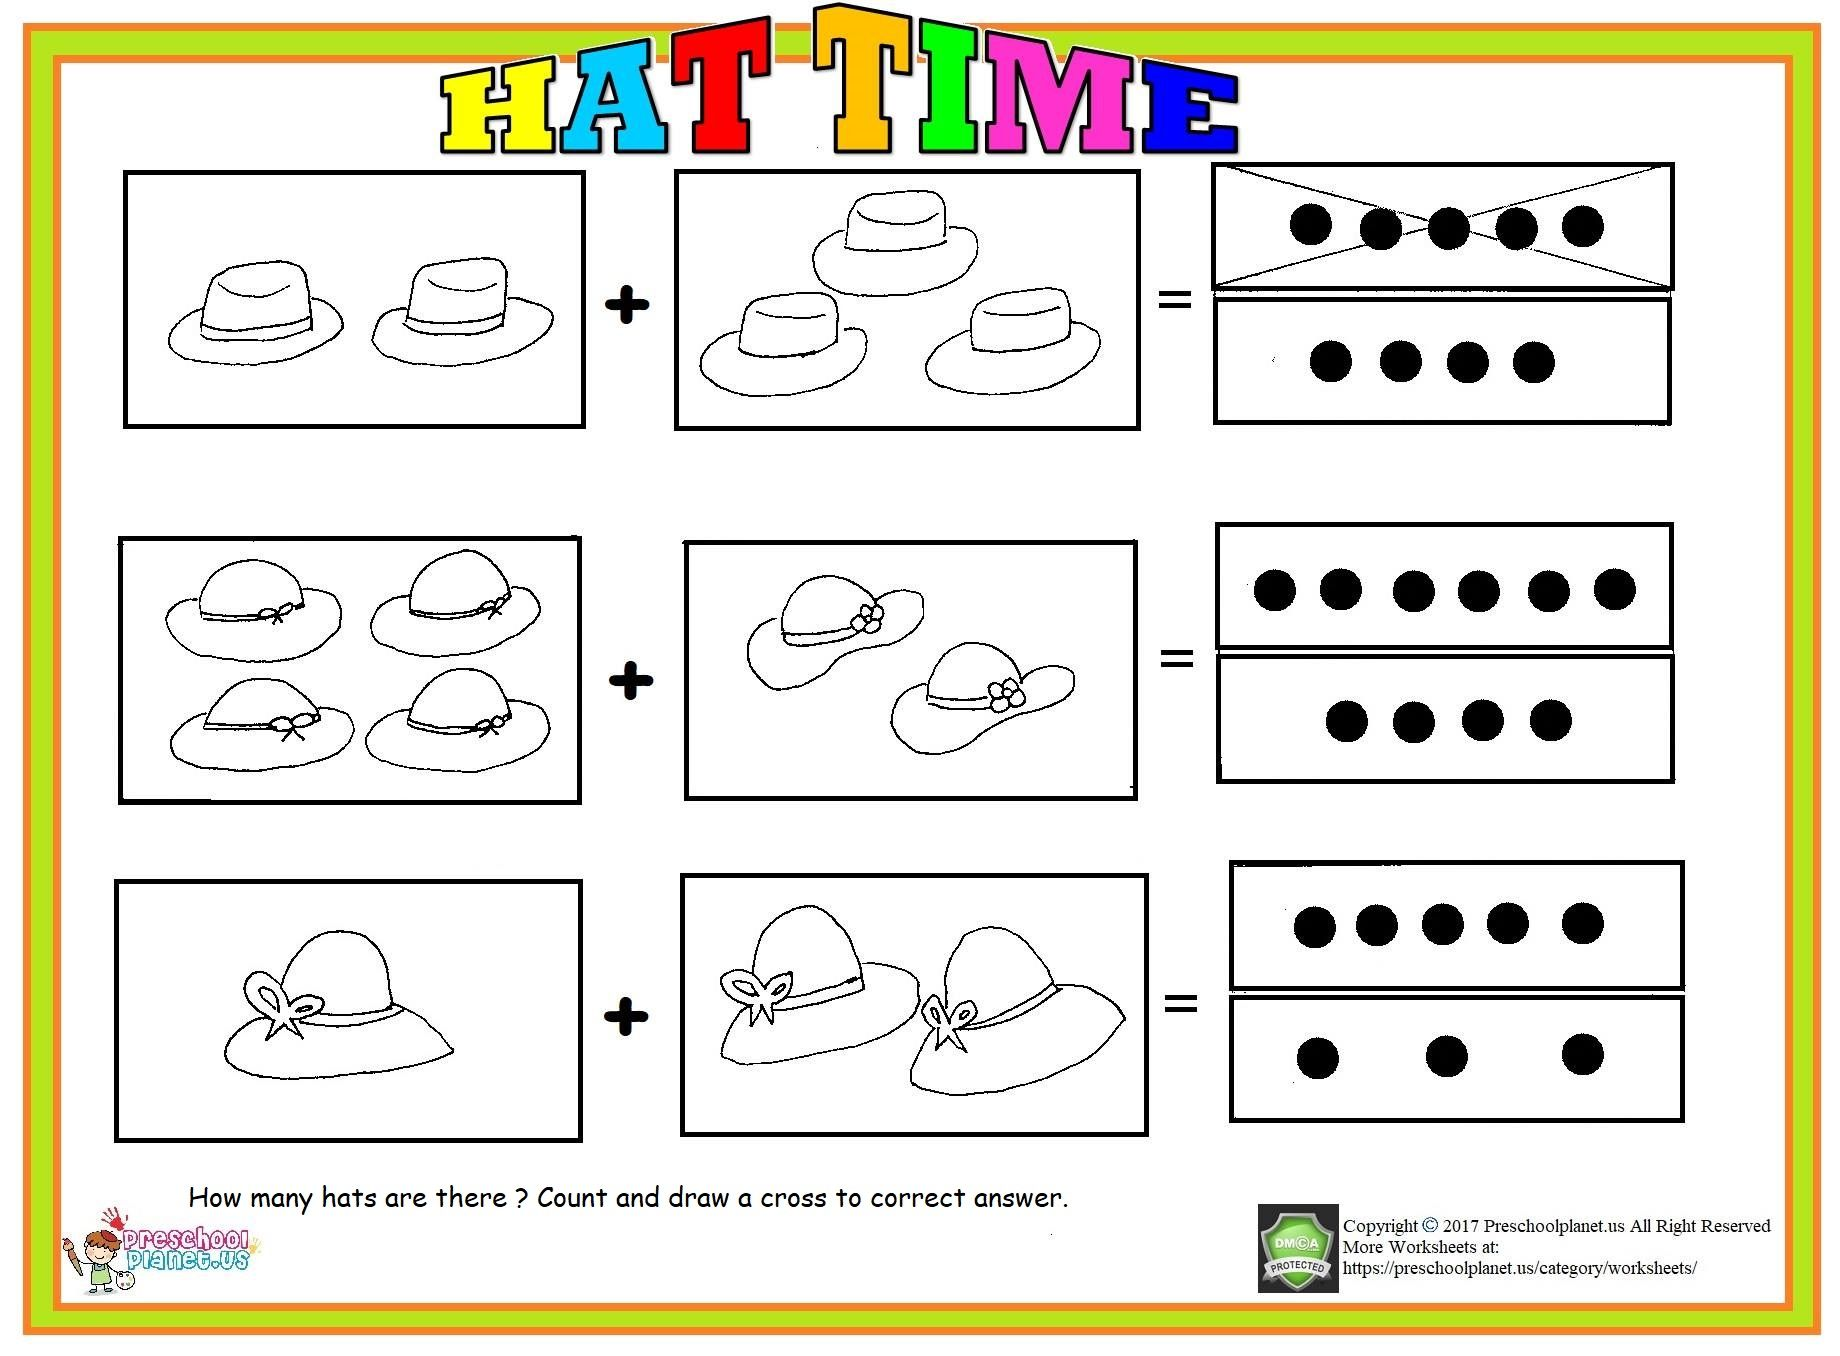 How Many Hats Are There Count And Draw Across To Correct